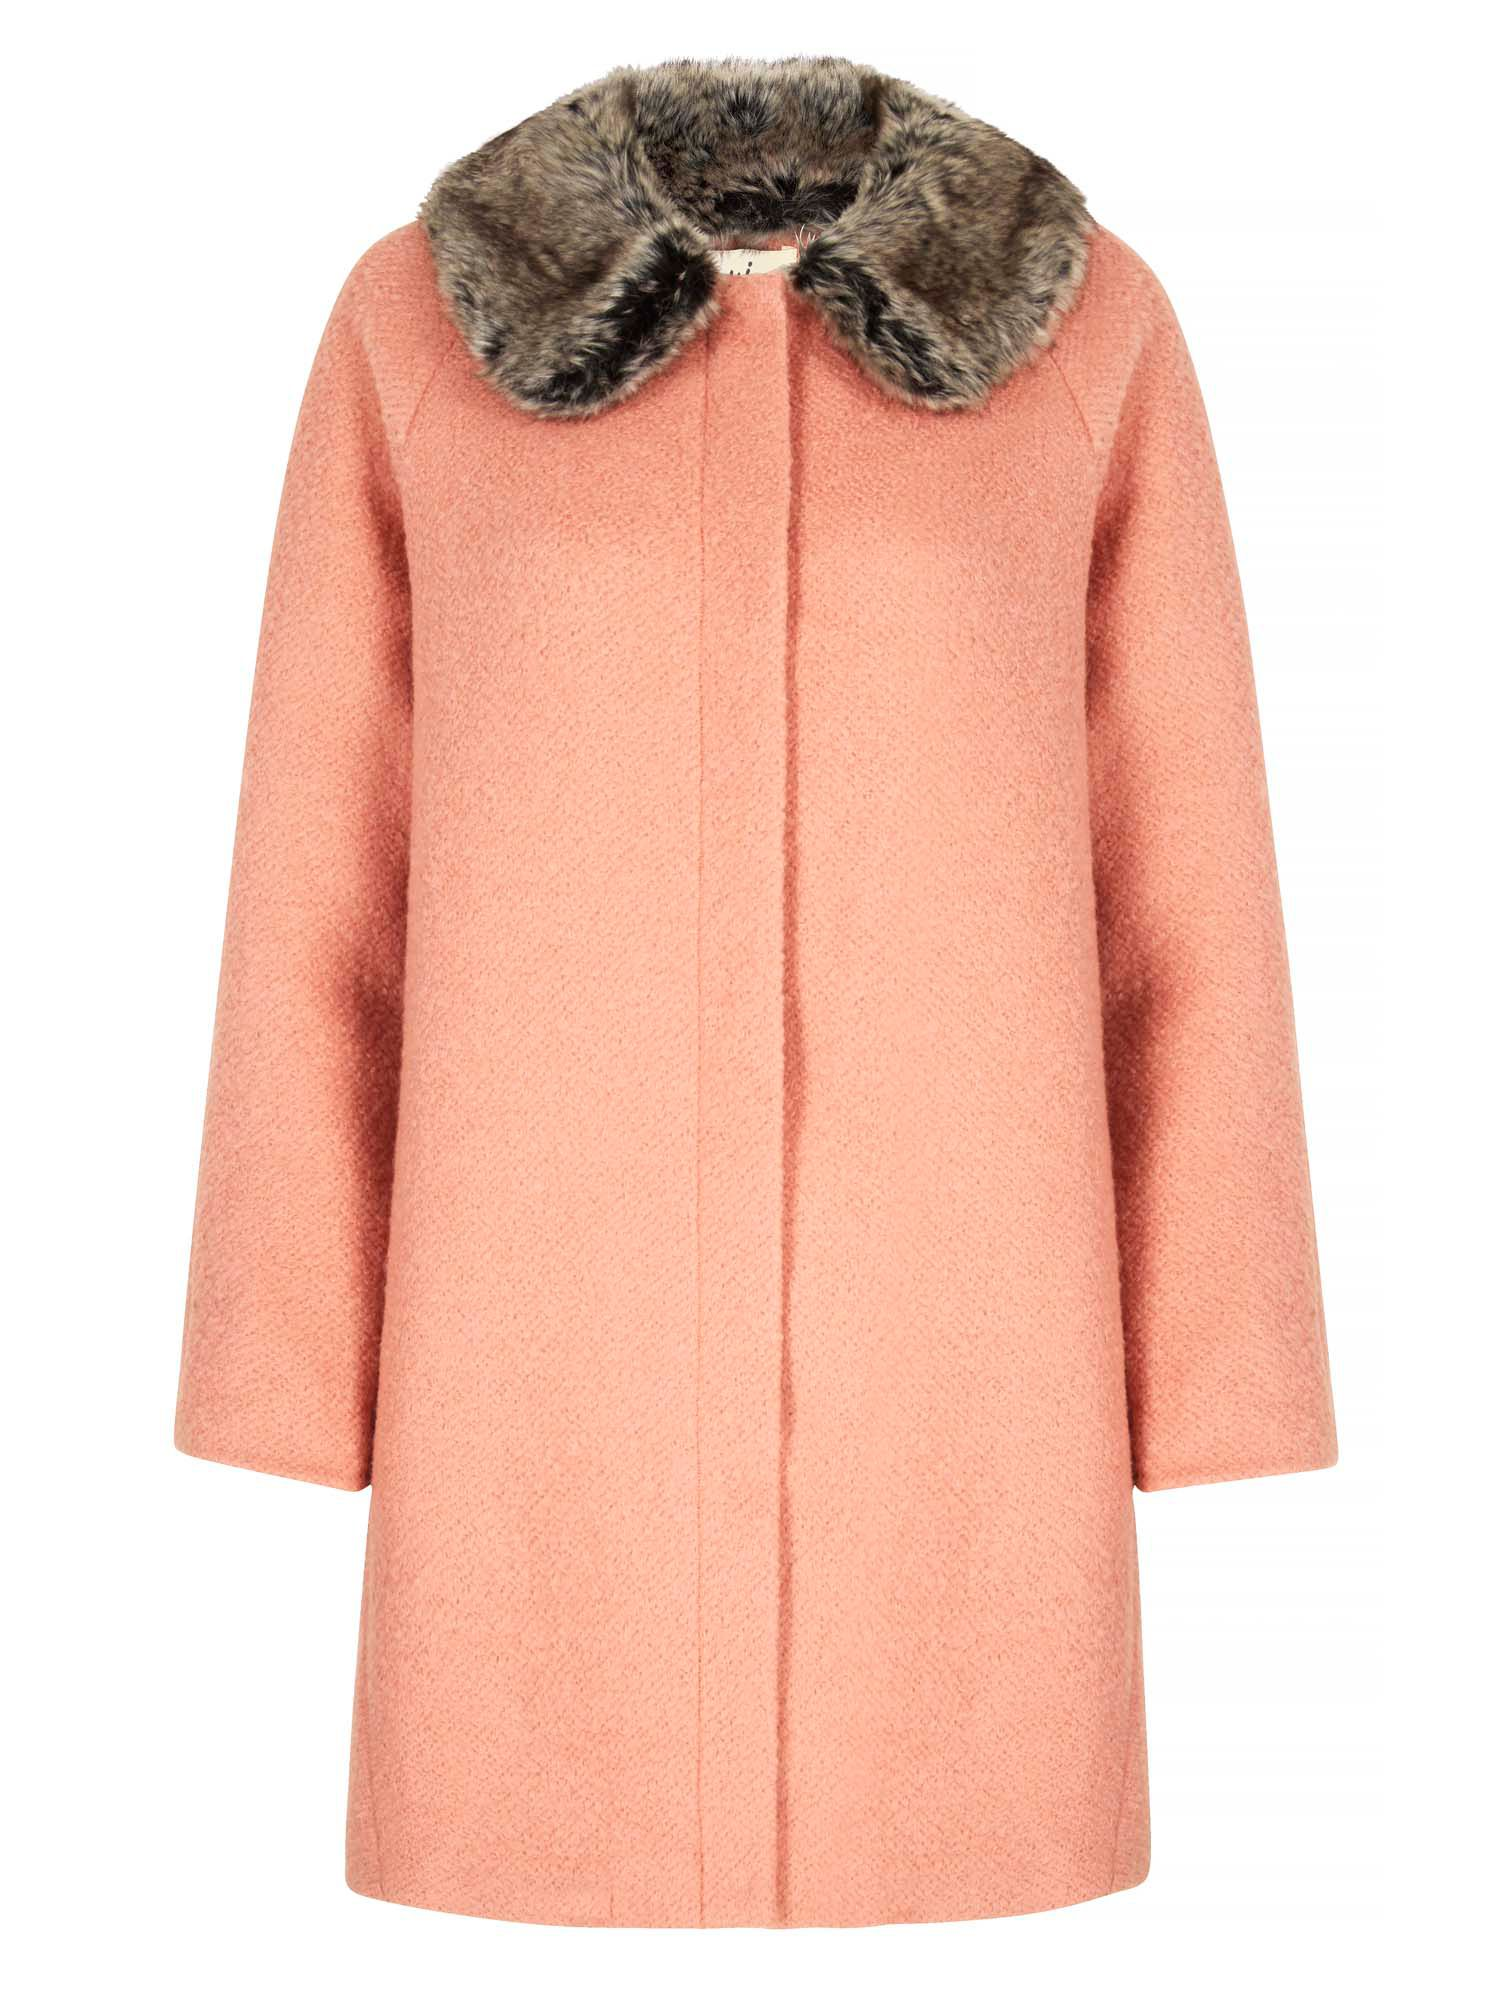 Shop 1960s Style Coats and Jackets Yumi Faux Fur Collared Cocoon Coat Coral £48.00 AT vintagedancer.com